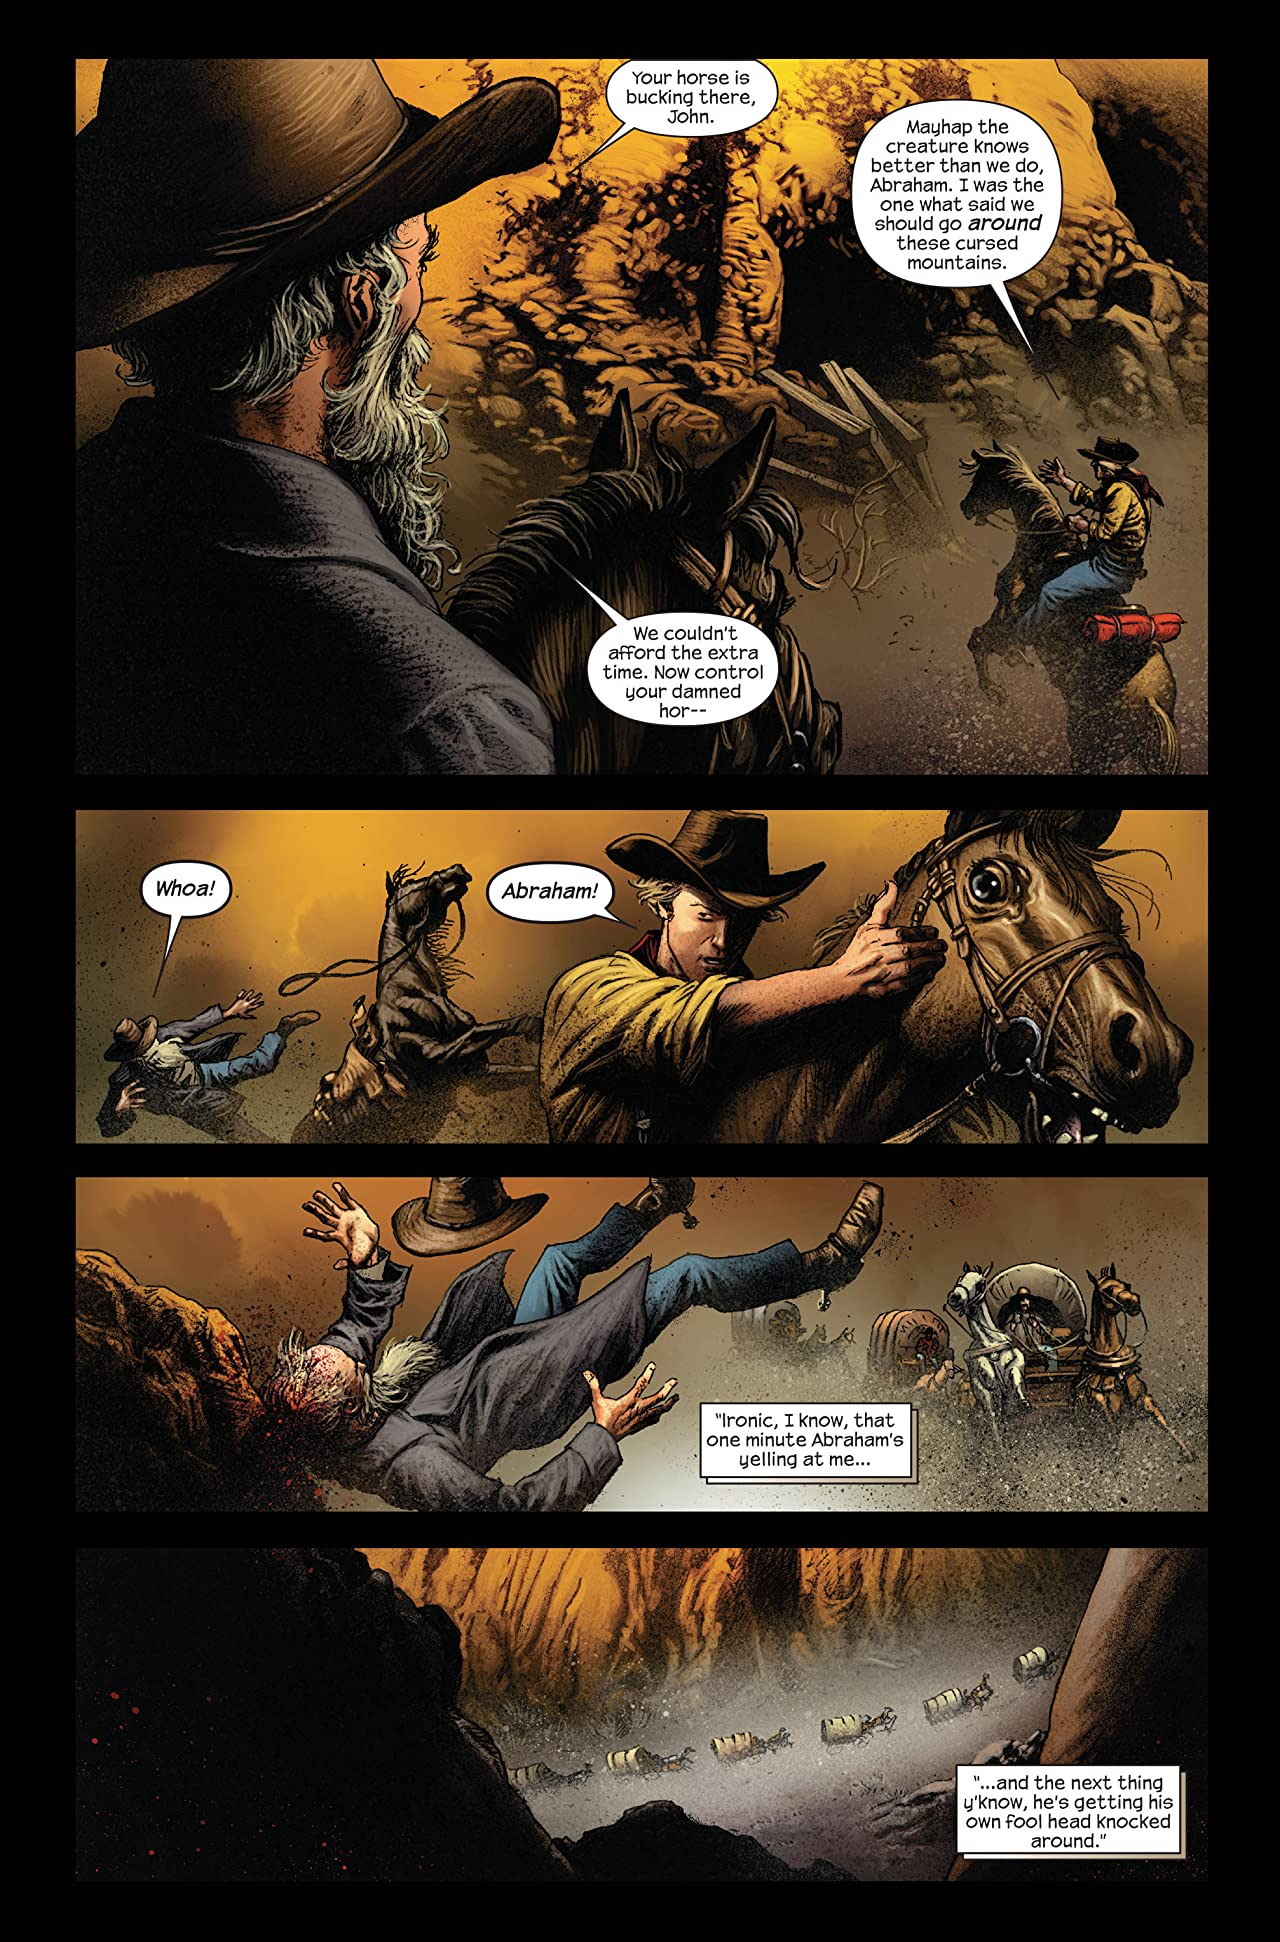 Dark Tower: The Gunslinger - The Little Sisters of Eluria #3 (of 5)